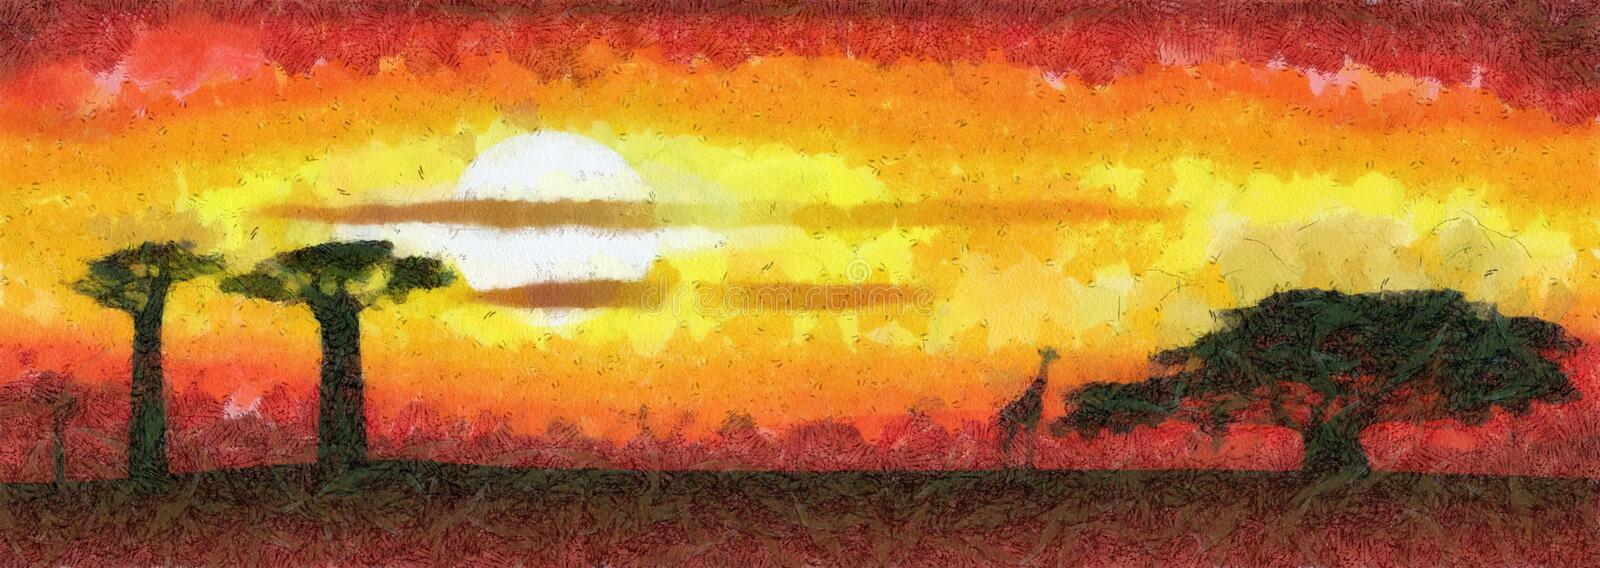 Africa sunset - abstract illustration. Abstract illustration of the Africa sunset royalty free illustration